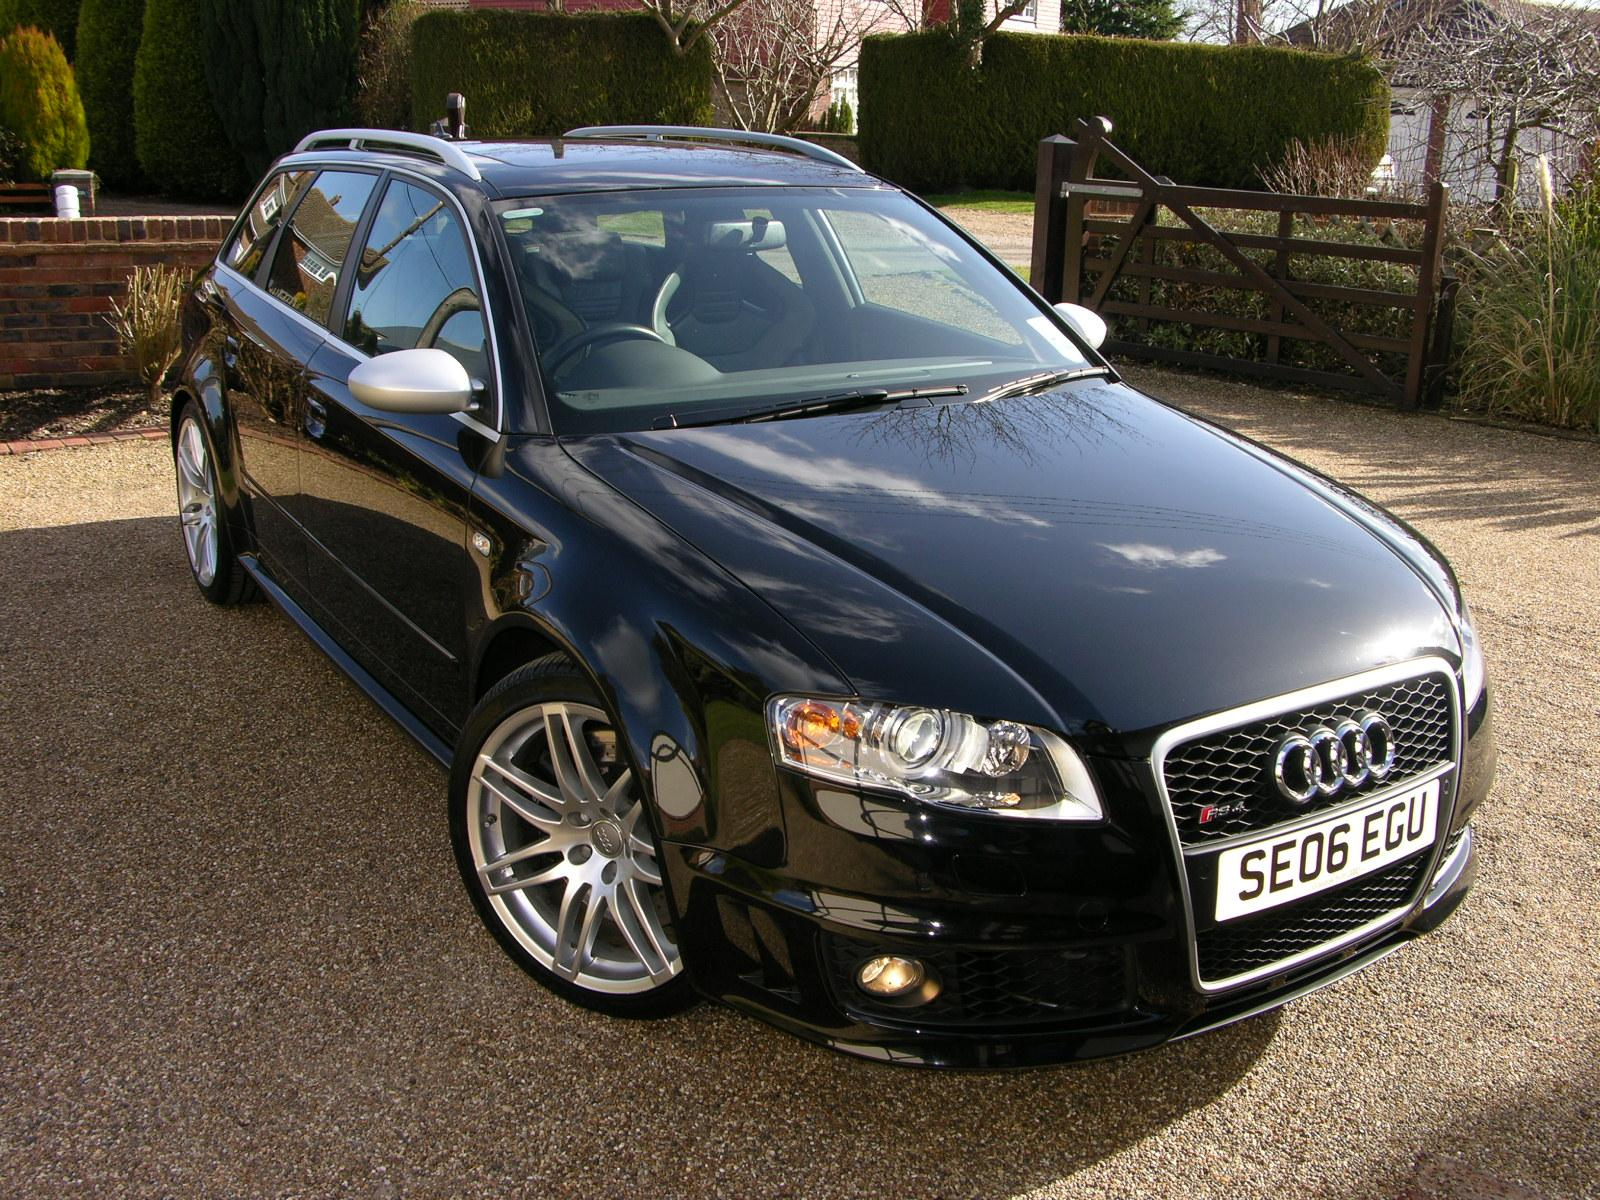 file 2006 audi rs4 avant flickr the car spy 19 jpg wikimedia commons. Black Bedroom Furniture Sets. Home Design Ideas